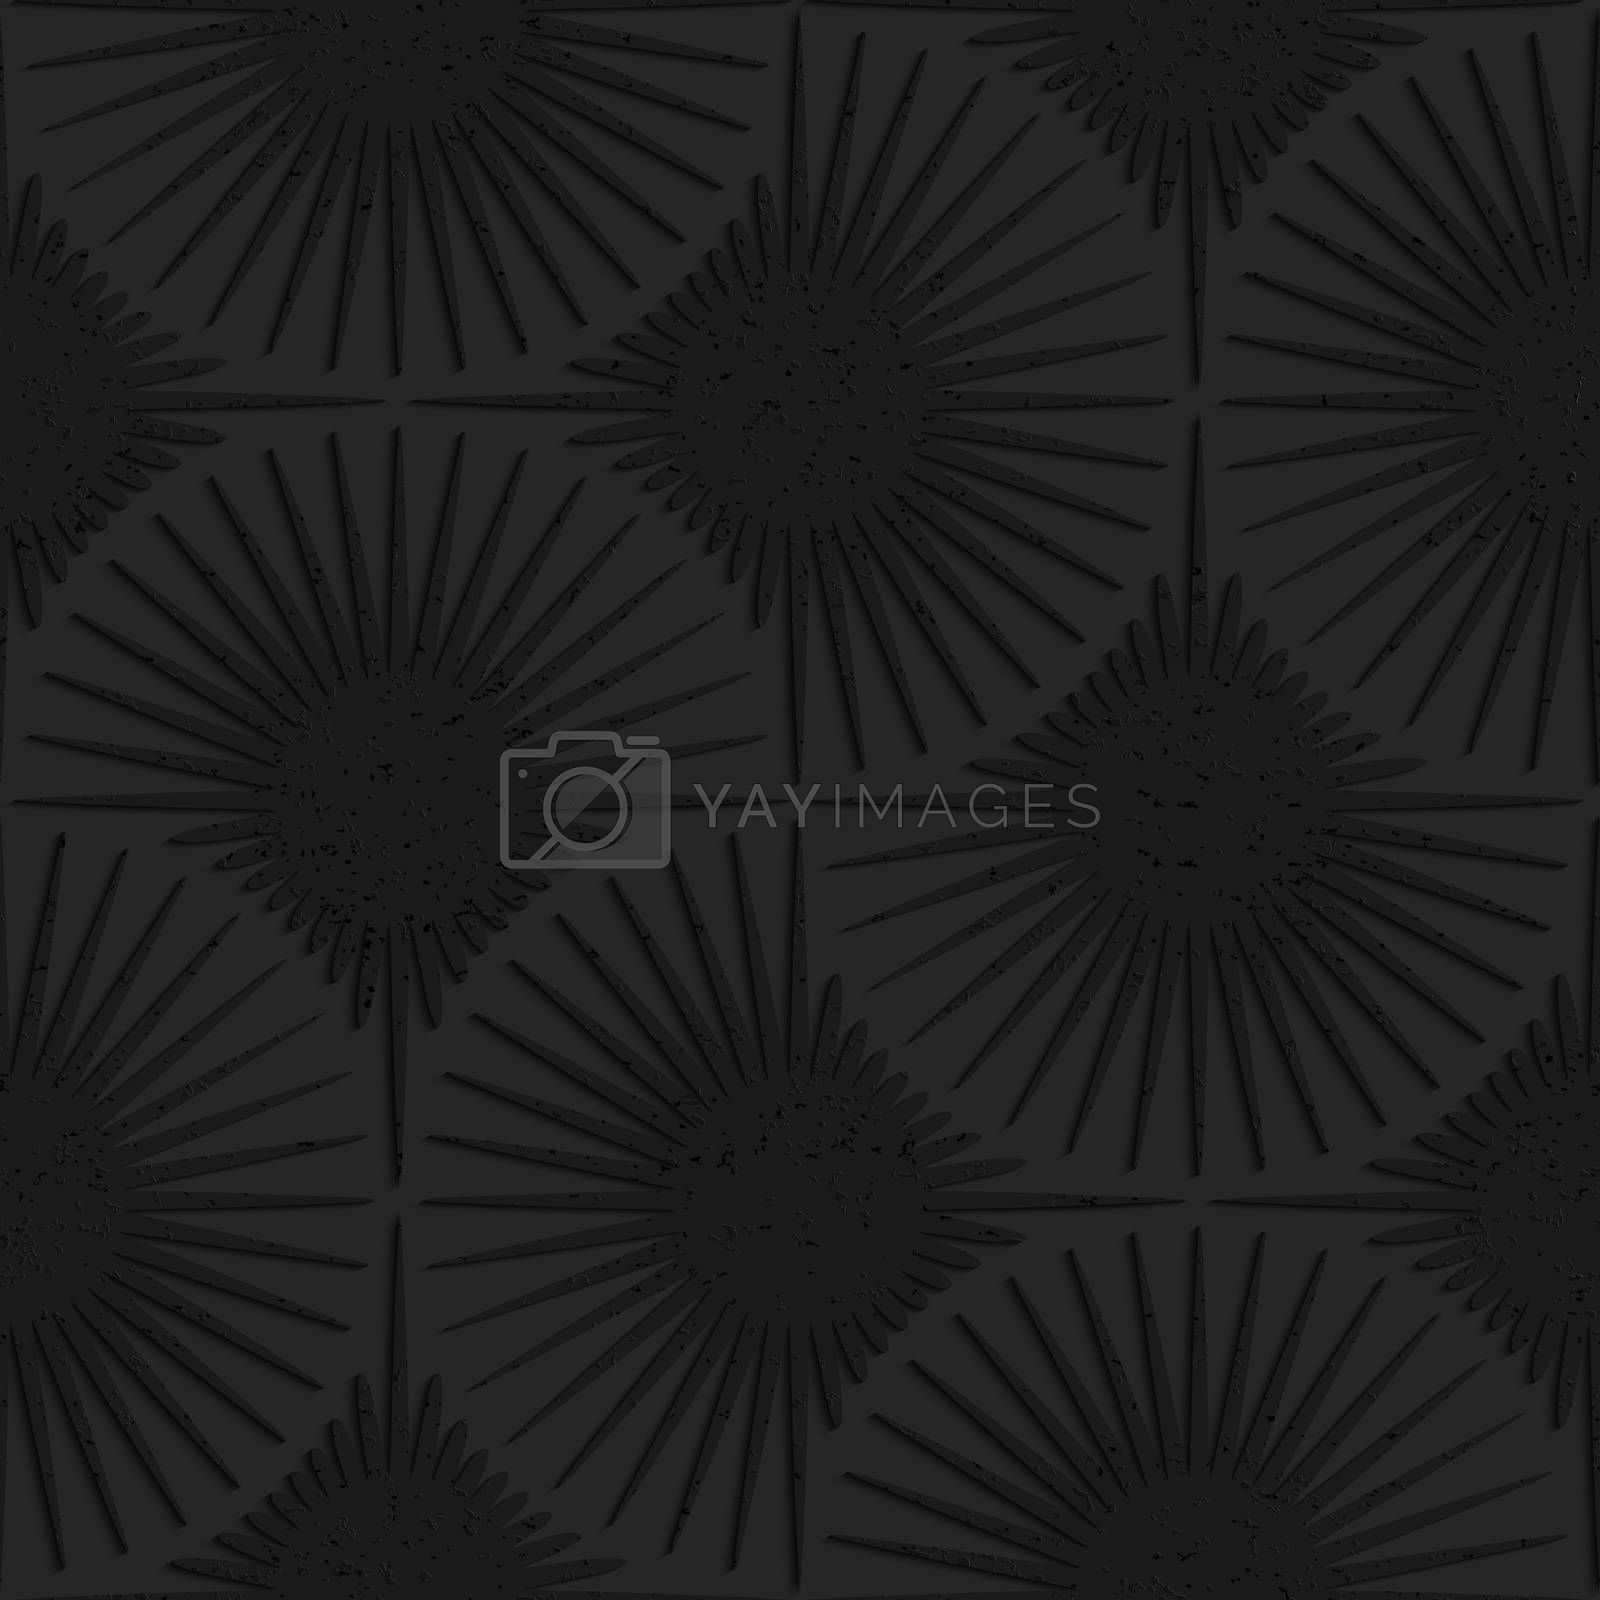 Seamless geometric background. Pattern with 3D texture and realistic shadow.Textured black plastic shapes with rays.